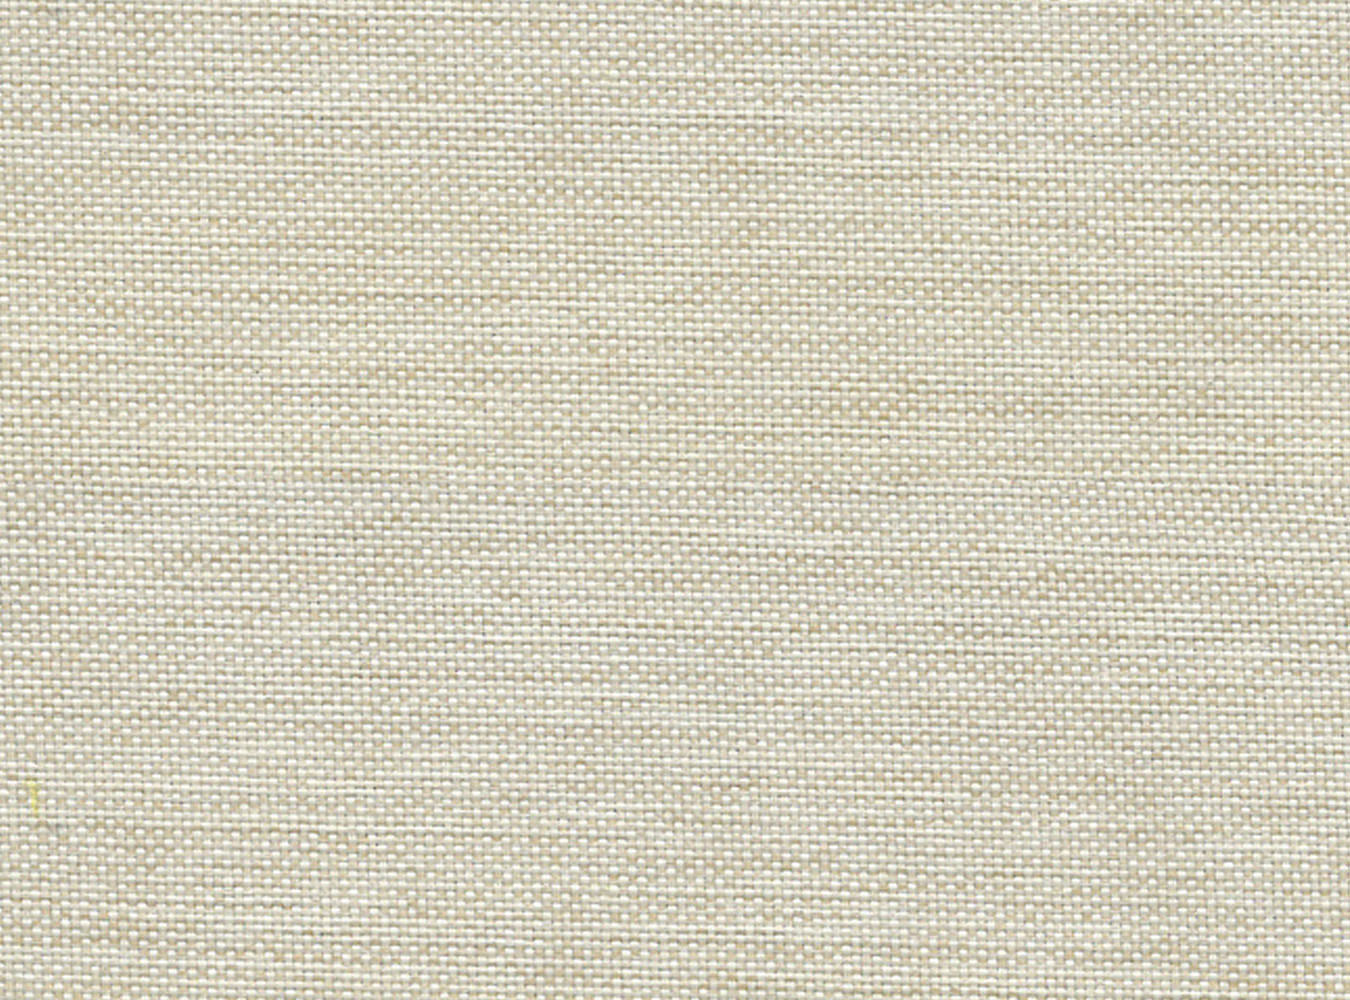 Saunton Natural - Swatch Sample